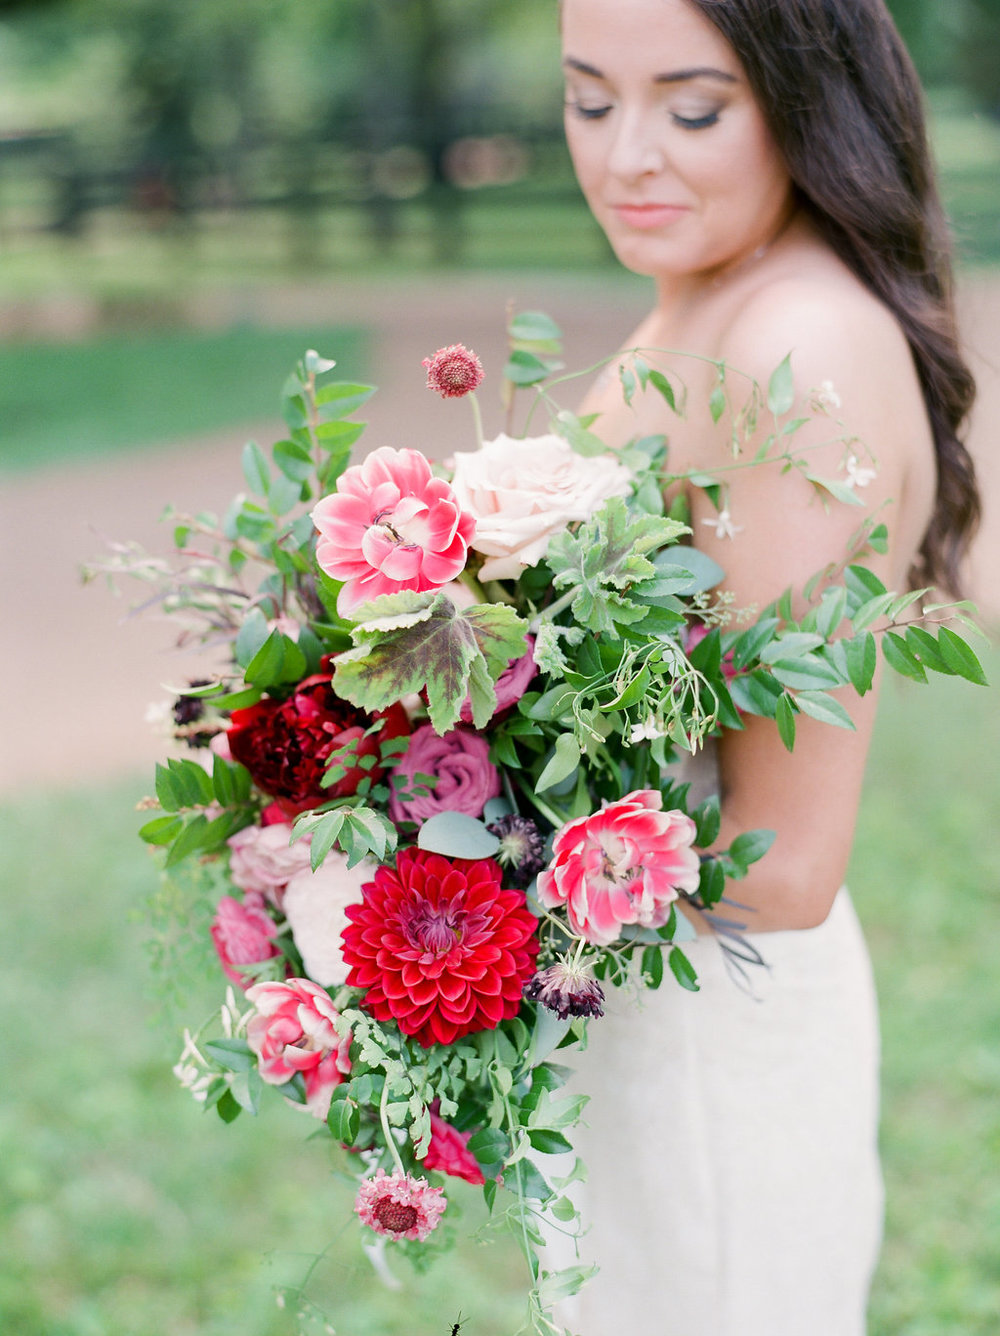 Lush bridal bouquet with marsala dahlias, pink tulips, burgundy peonies, pink ranunculus, and maidenhair fern // Belle Meade Wedding Floral Design